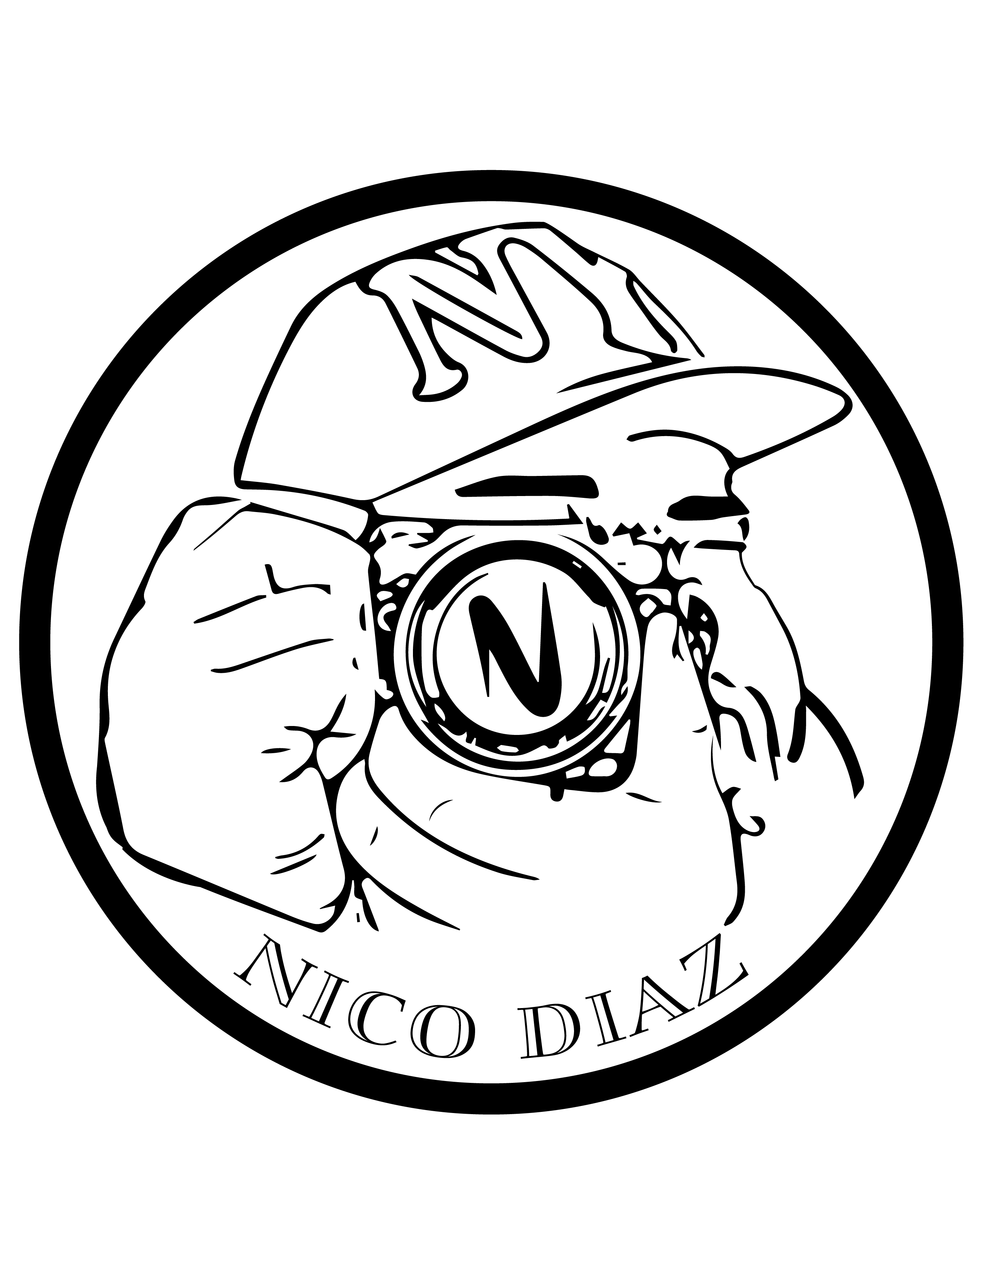 Nico Diaz Photography Logo